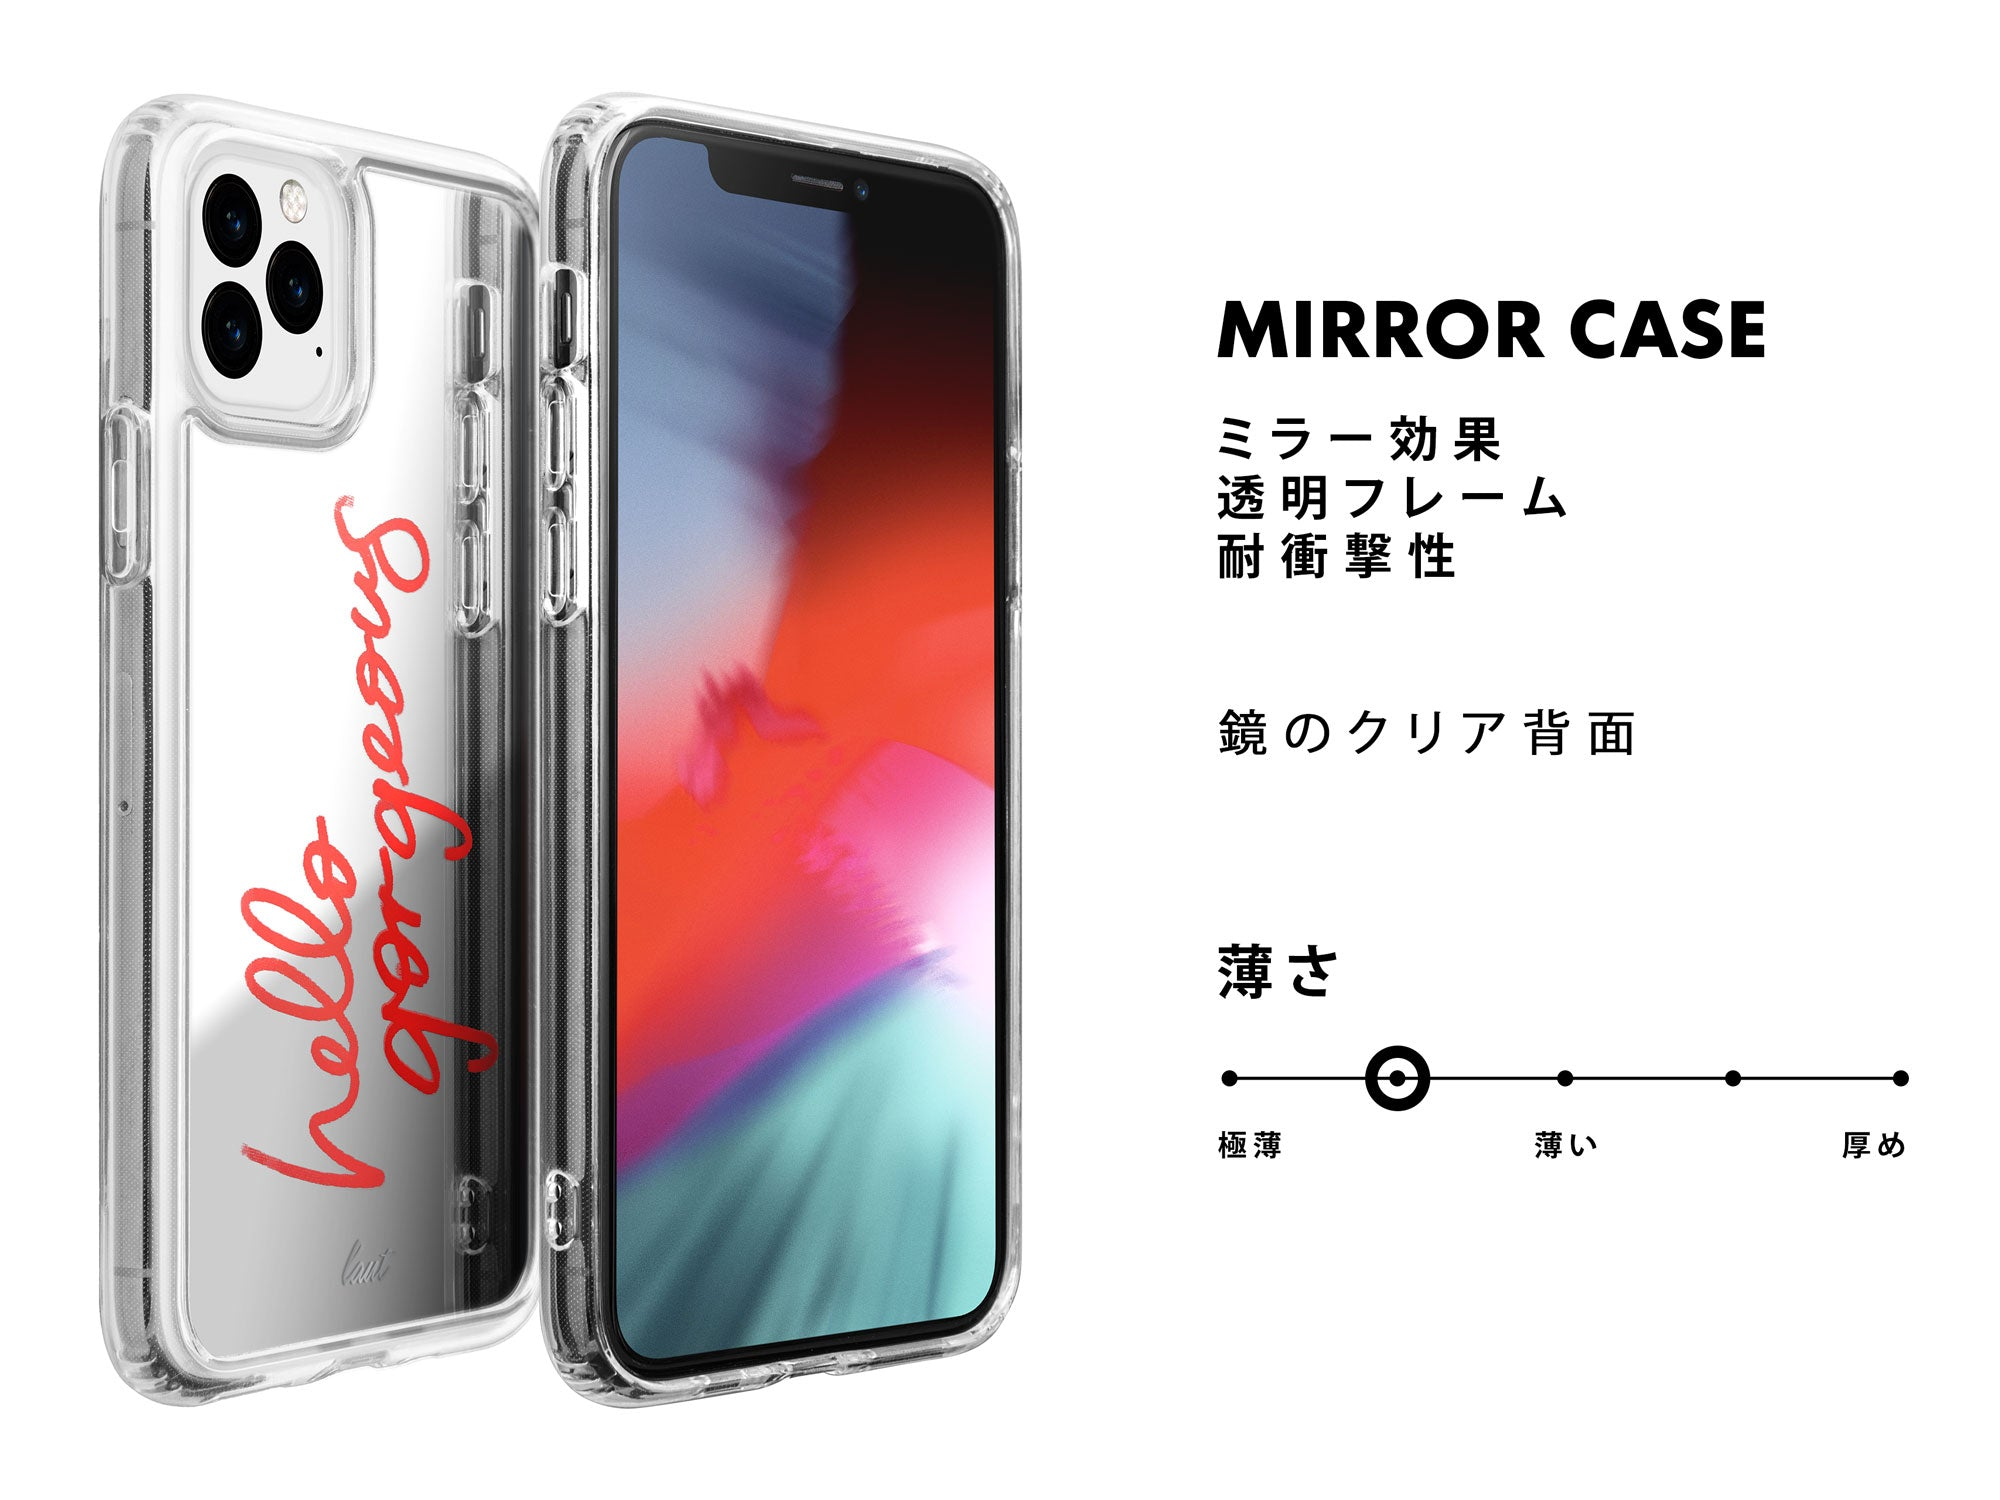 MIRROR for iPhone 11 series